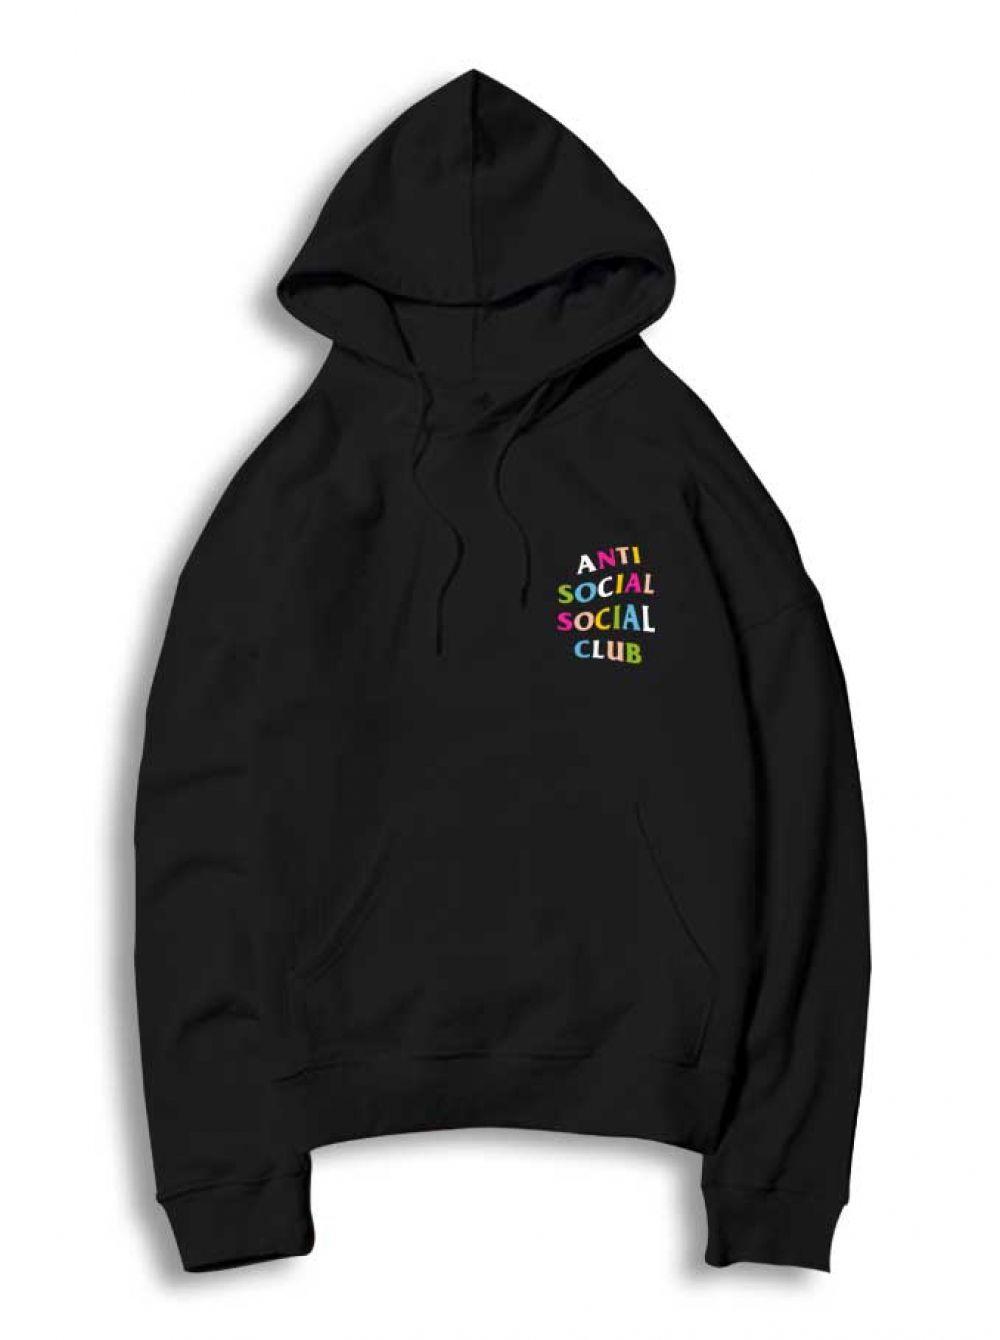 45c14bbda406 Anti Social Social Club ASSC Multciolor Hoodie #Tee #Hype #Outfits #Outfit  #Hypebeast #fashion #shirt #Tees #Tops #Teen #outfitideas #summergift  #Summer